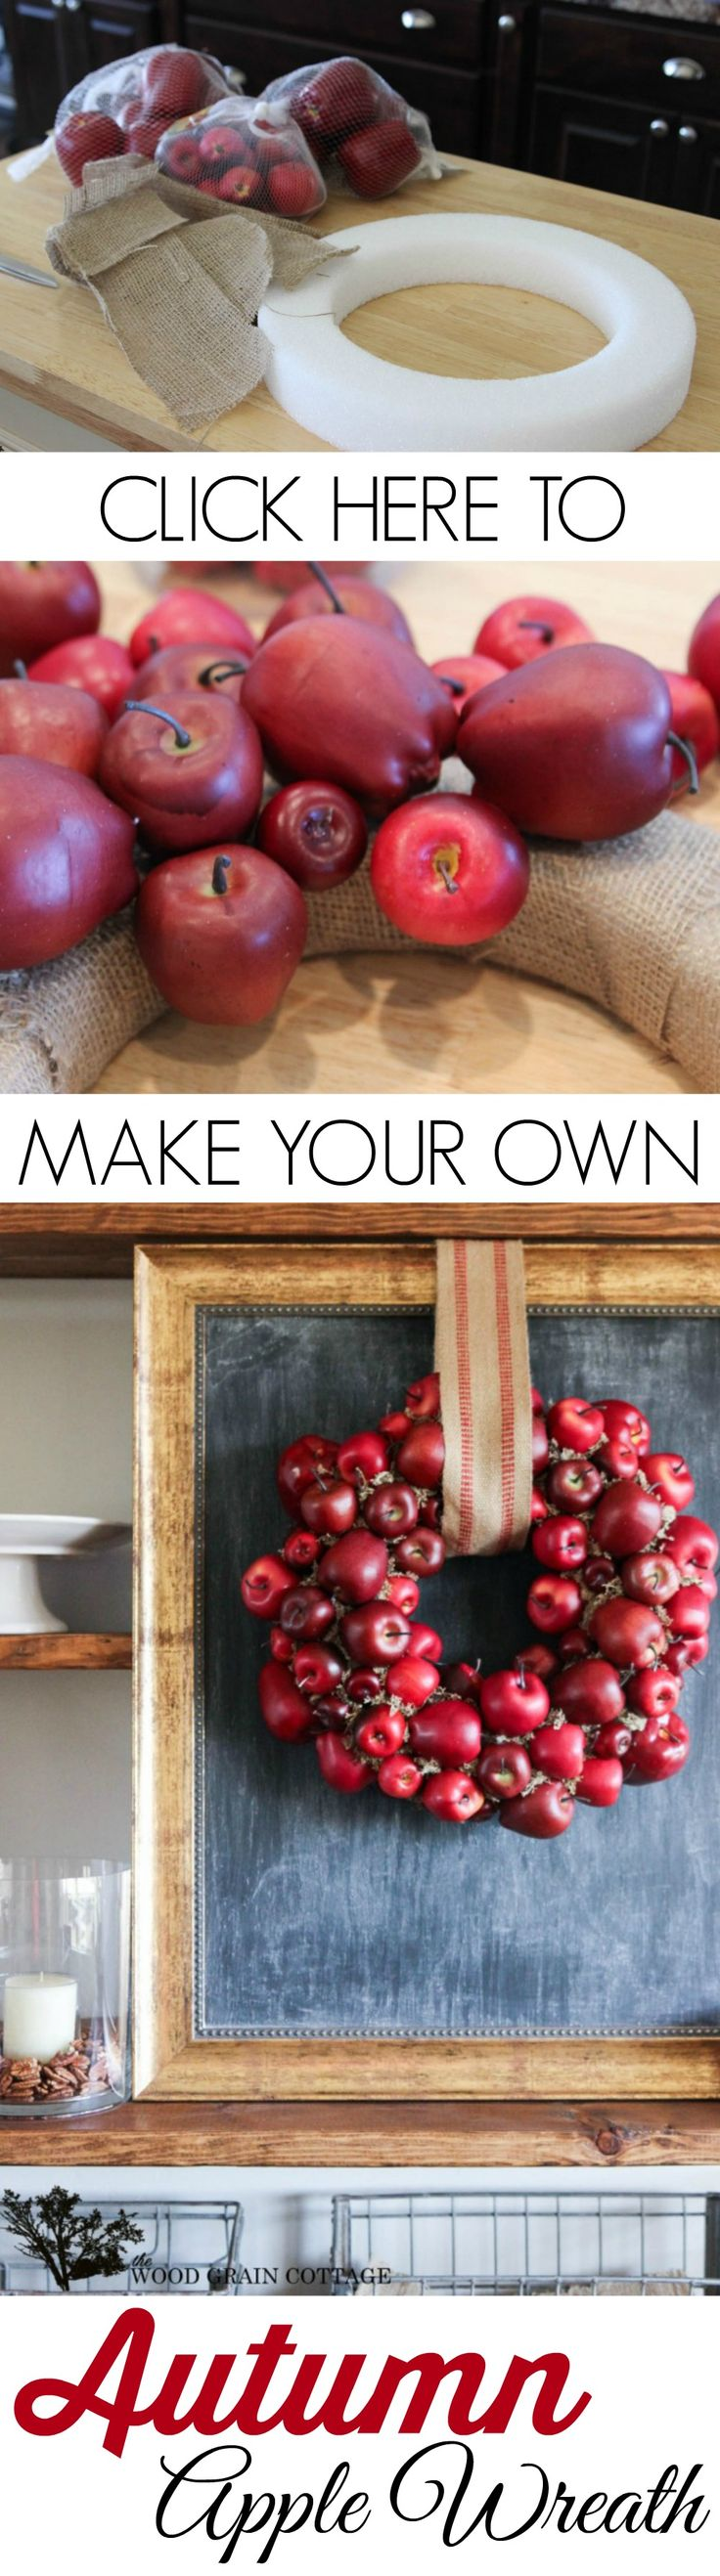 Autumn Apple Decor - DIY Fall Wreath Craft Home Decorating Tutorial from The Wood Grain Cottage